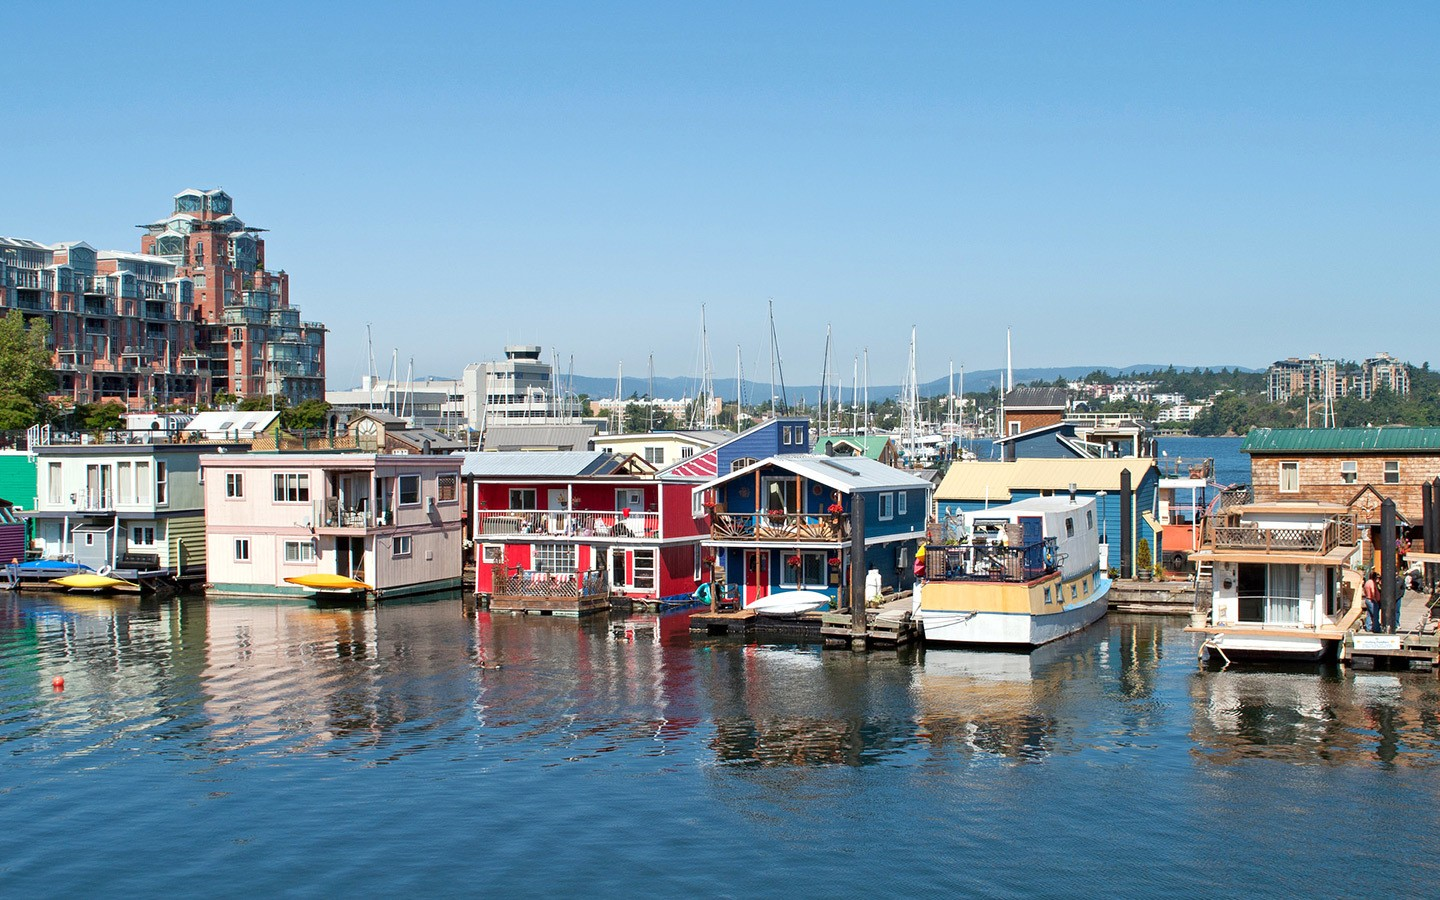 Fisherman's Wharf in Victoria, British Columbia, Canada